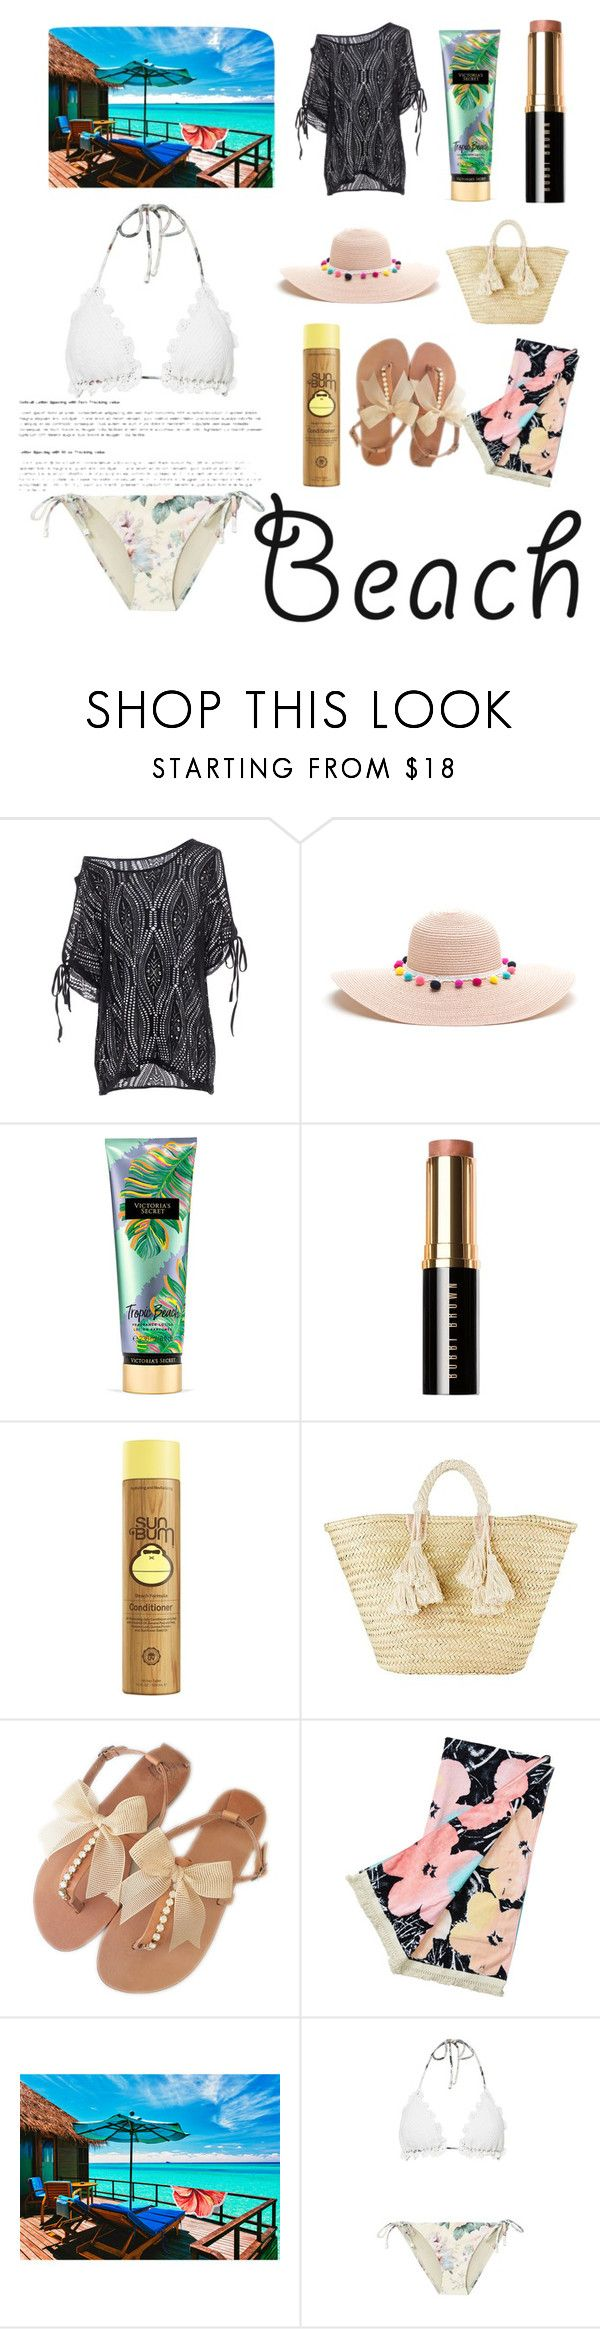 """Untitled #128"" by putrinaini on Polyvore featuring Victoria's Secret, Bobbi Brown Cosmetics, Giselle, Billabong, LaMont and Zimmermann"